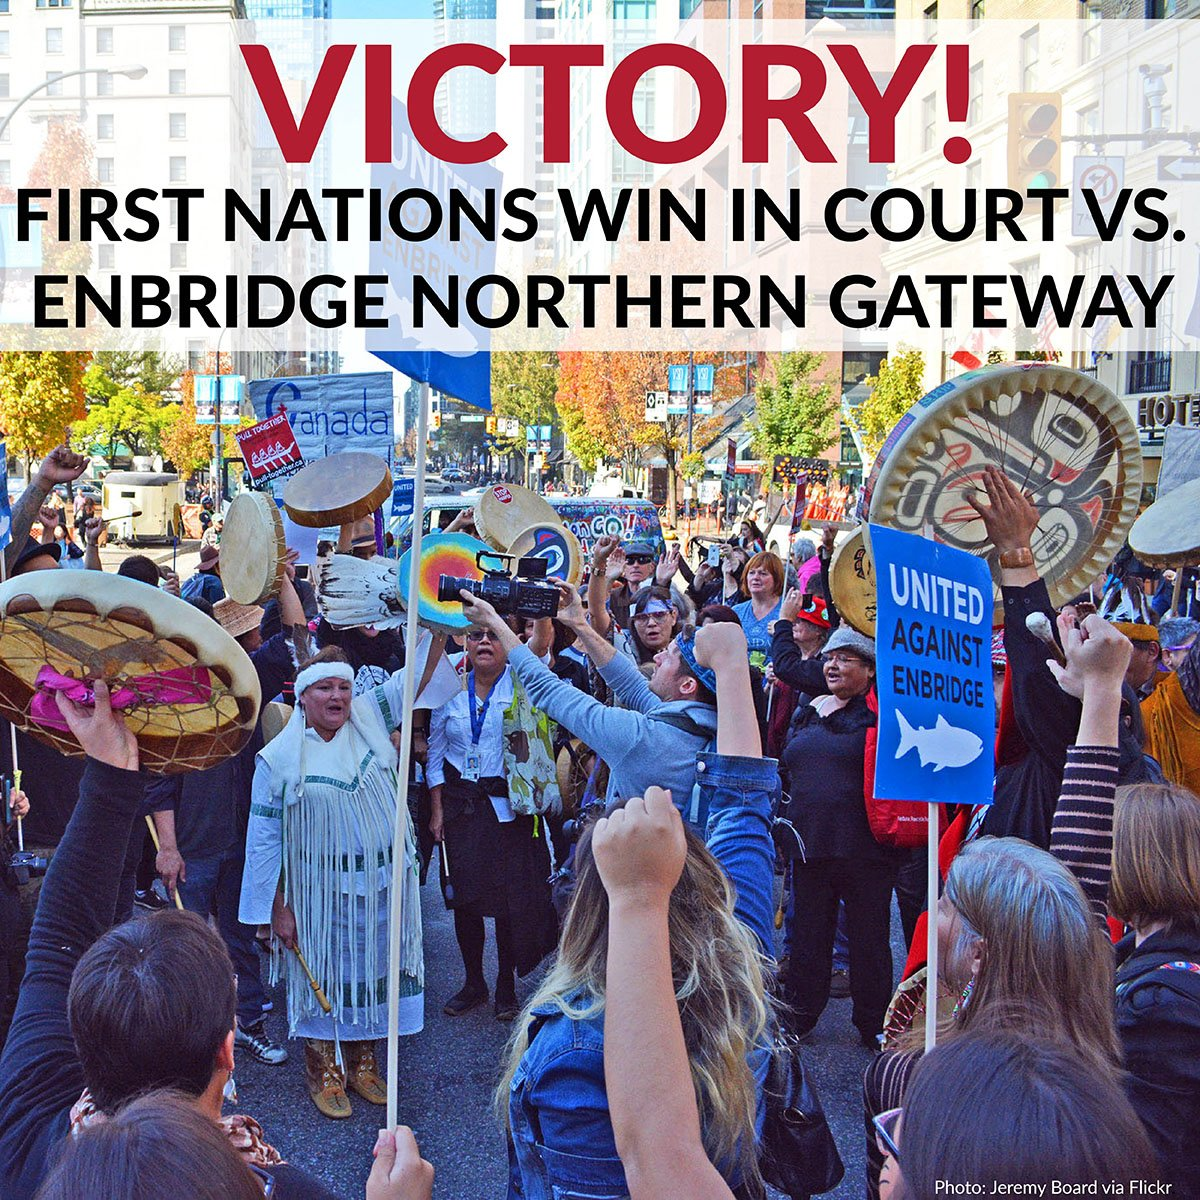 Our hearts are full; #NorthernGateway approval overturned by Federal Court of Appeal! #NoEnbridge #cdnpoli #bcpoli https://t.co/l6T6XHRT0l